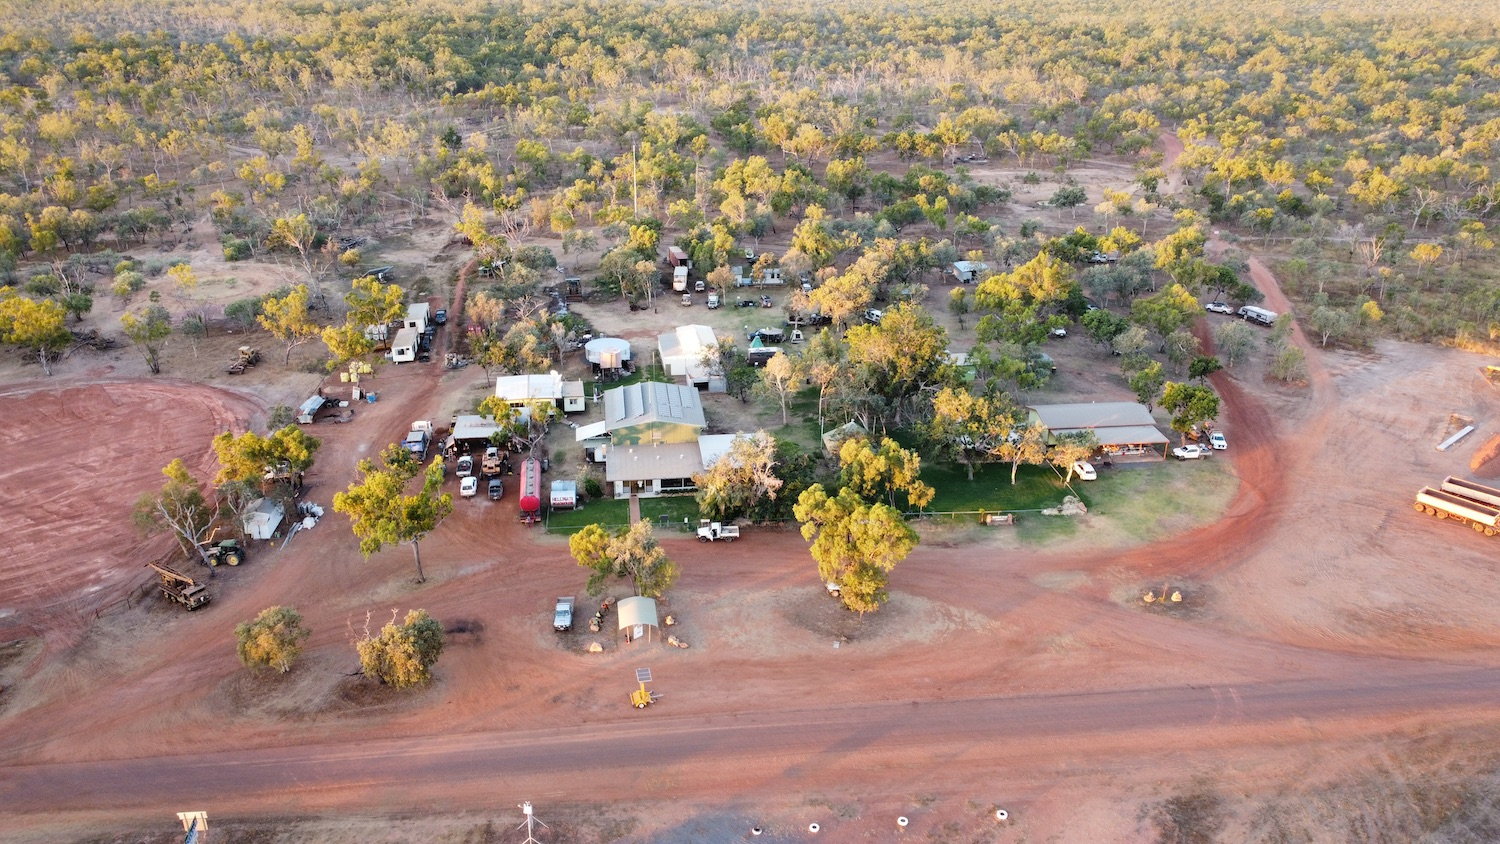 Hell's Gate Roadhouse view from helicopter